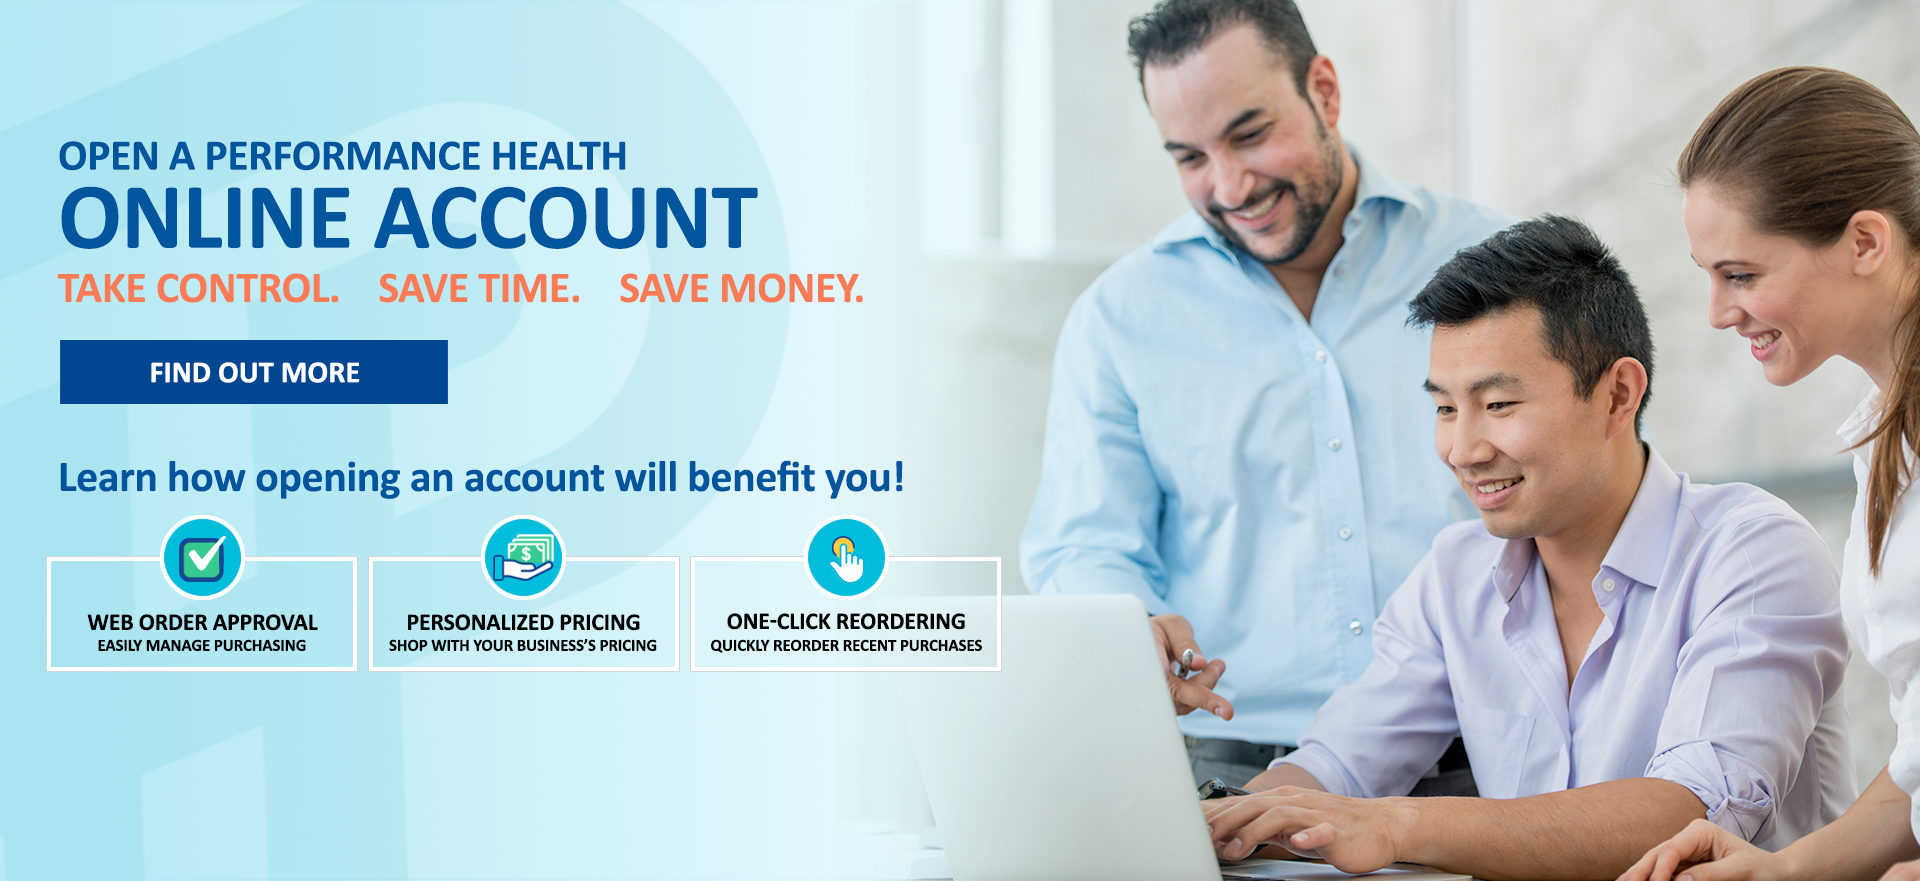 Performance Health Online Account Benefits